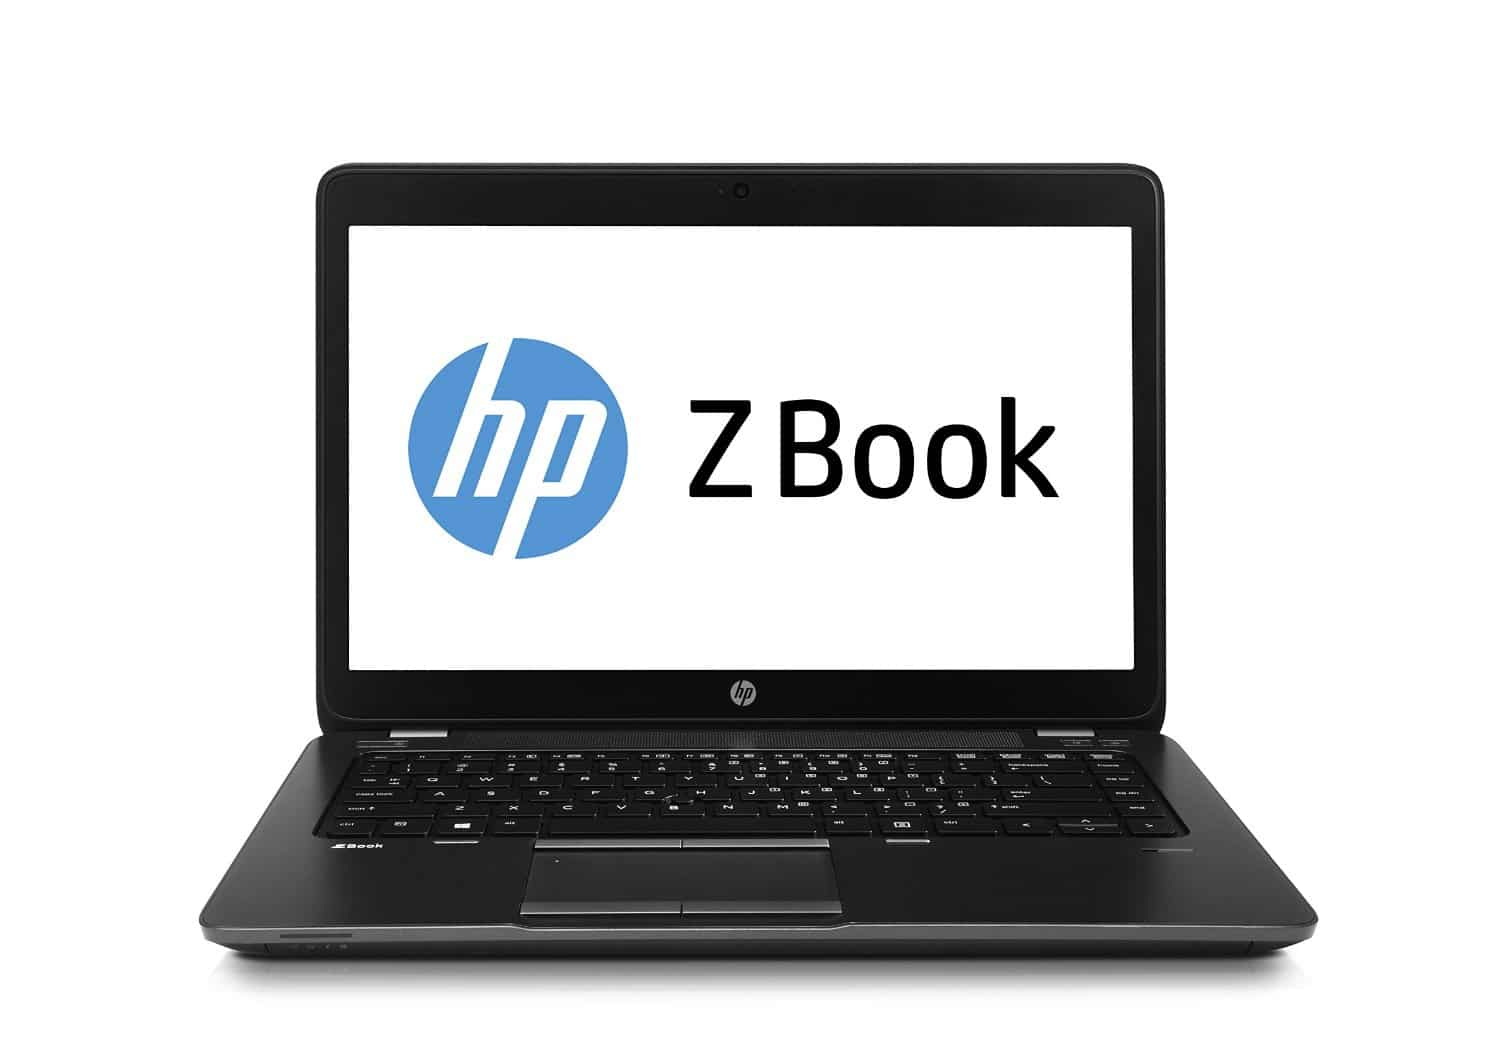 HP ZBook 14-inch - Best Laptop for Engineering College Students 2015